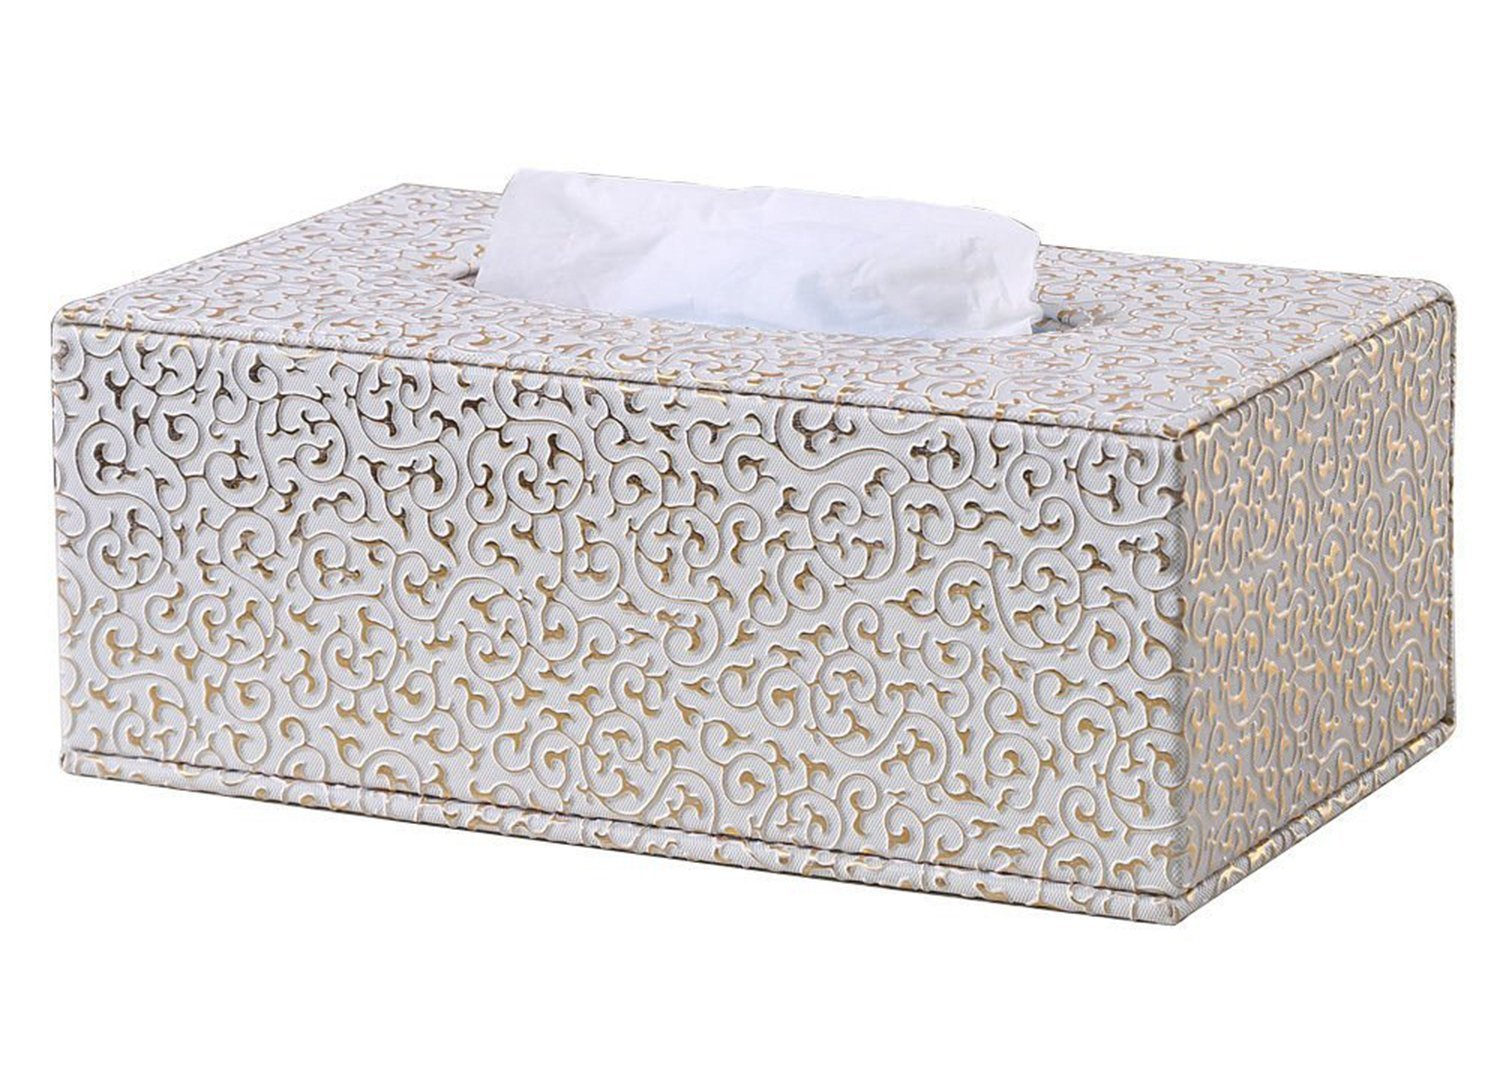 KINGFOM Rectangular PU Leather Facial Tissue Box Table Decoration (Gold Decorative Pattern) by KINGFOM